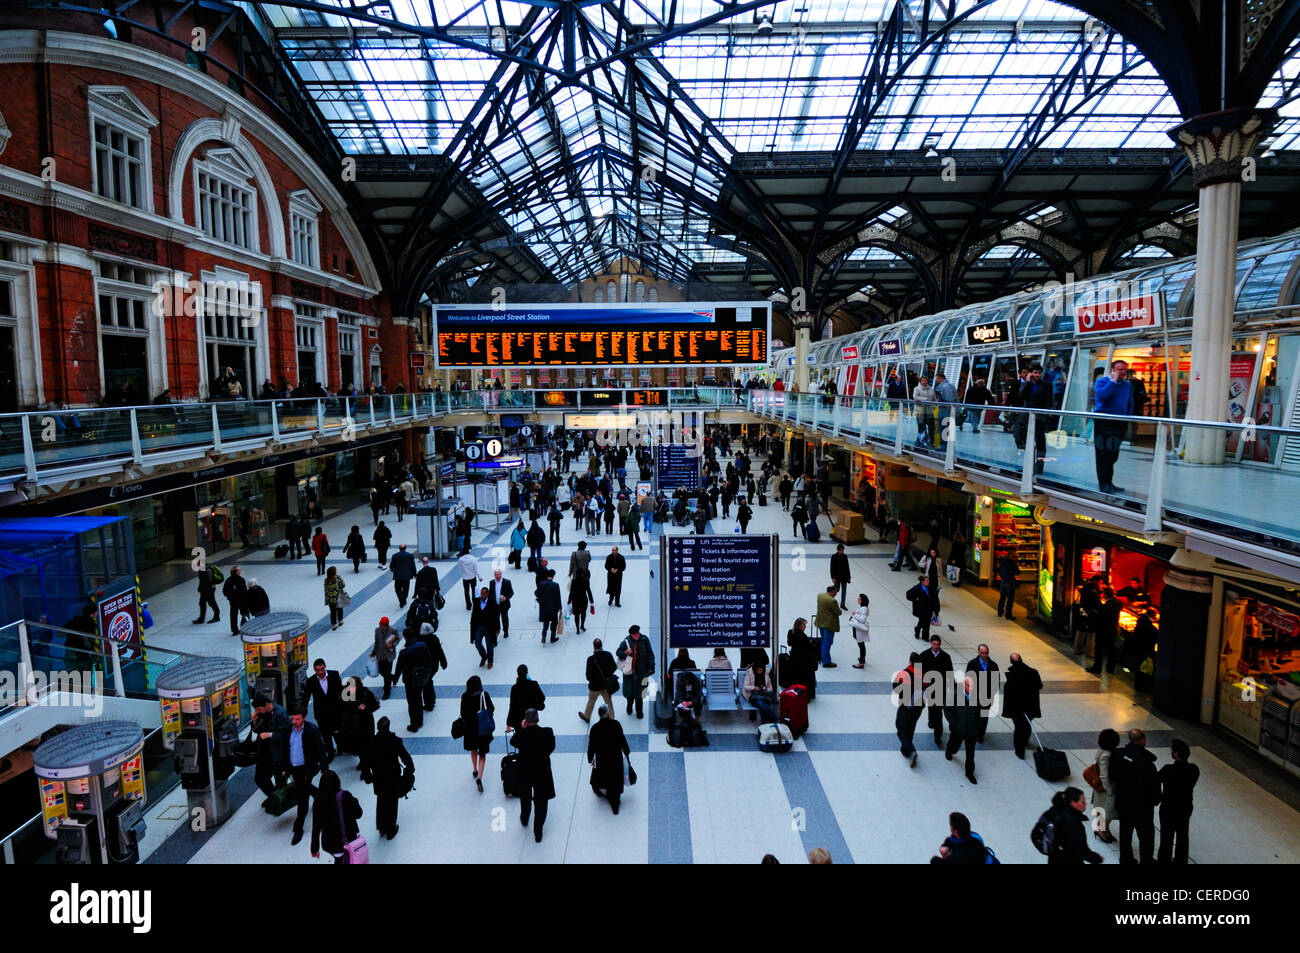 Busy concourse inside Liverpool Street Station Stock Photo ...